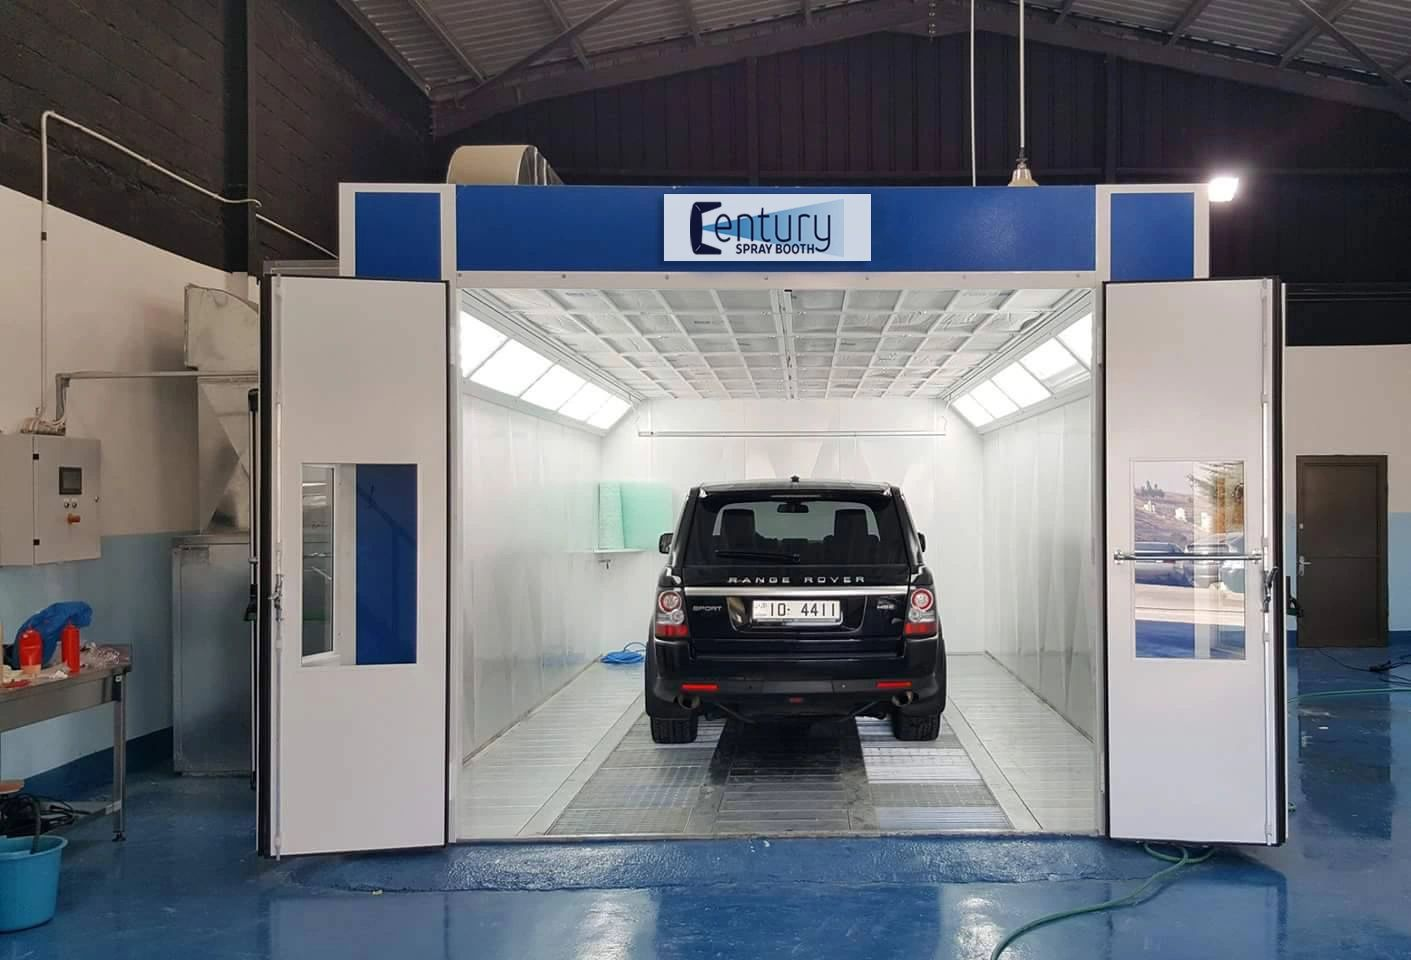 Downdraft Paint Booths for Sale | Century Spray Booth